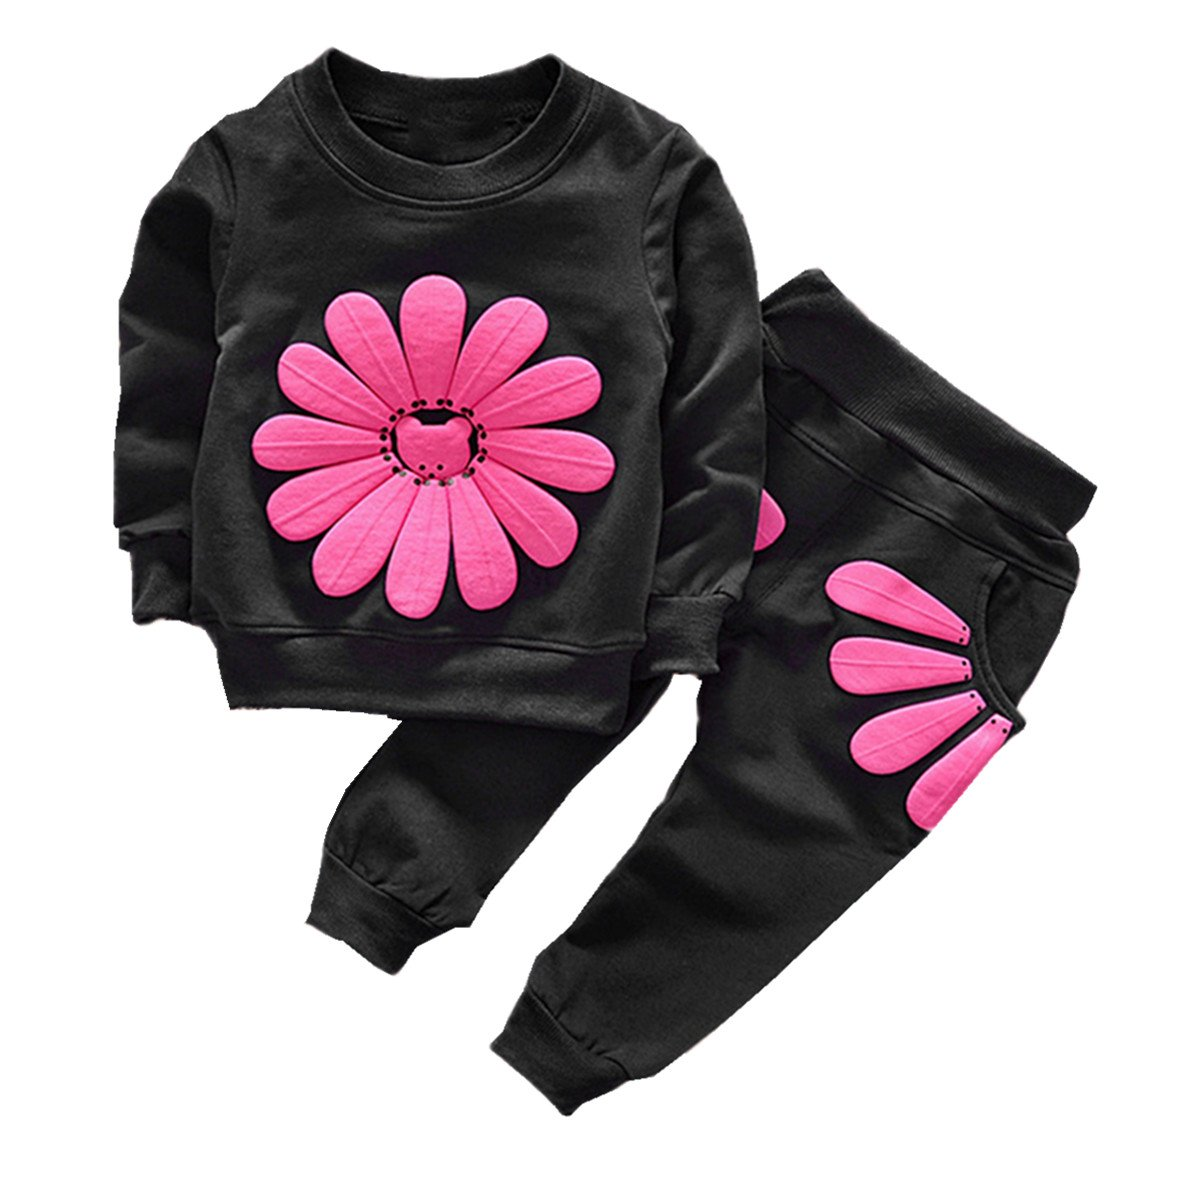 2-3 years, Grey Harem Pants Outfits Set Internet Kids Clothes Long Sleeve Heart Print Tracksuit